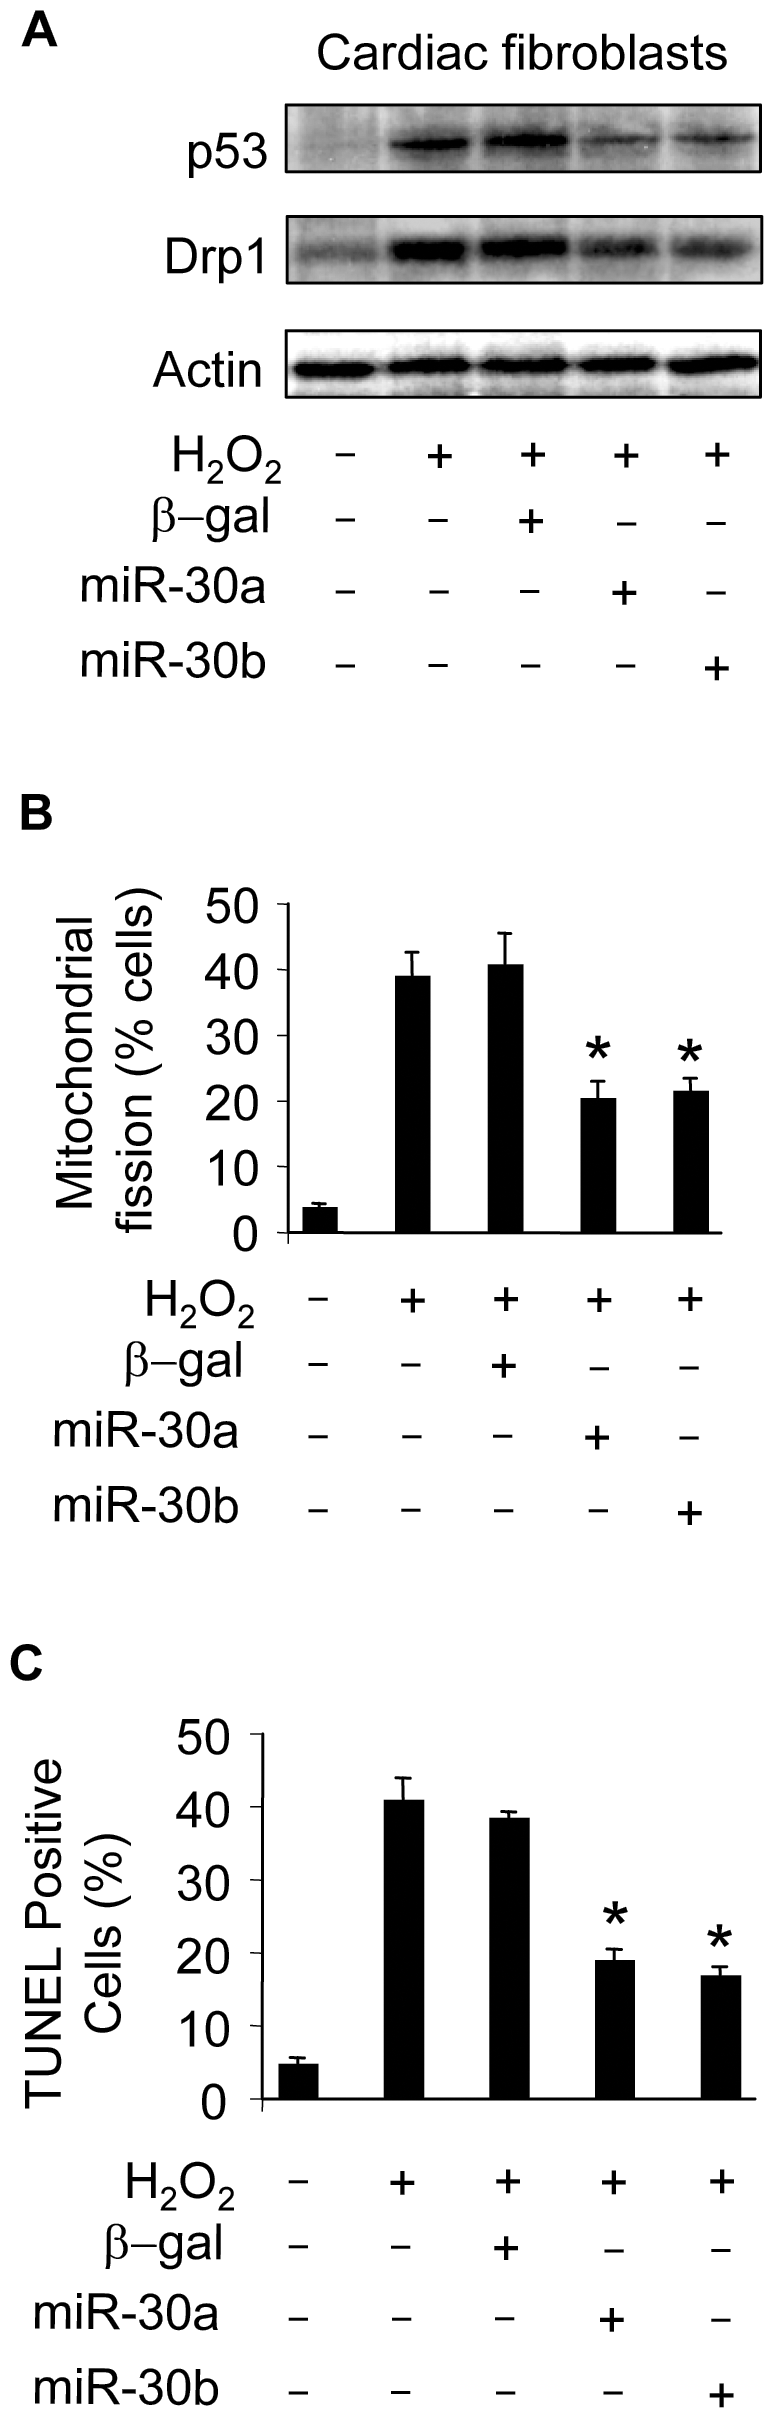 miR-30 can influence mitochondrial fission and apoptosis in cardiac fibroblasts.